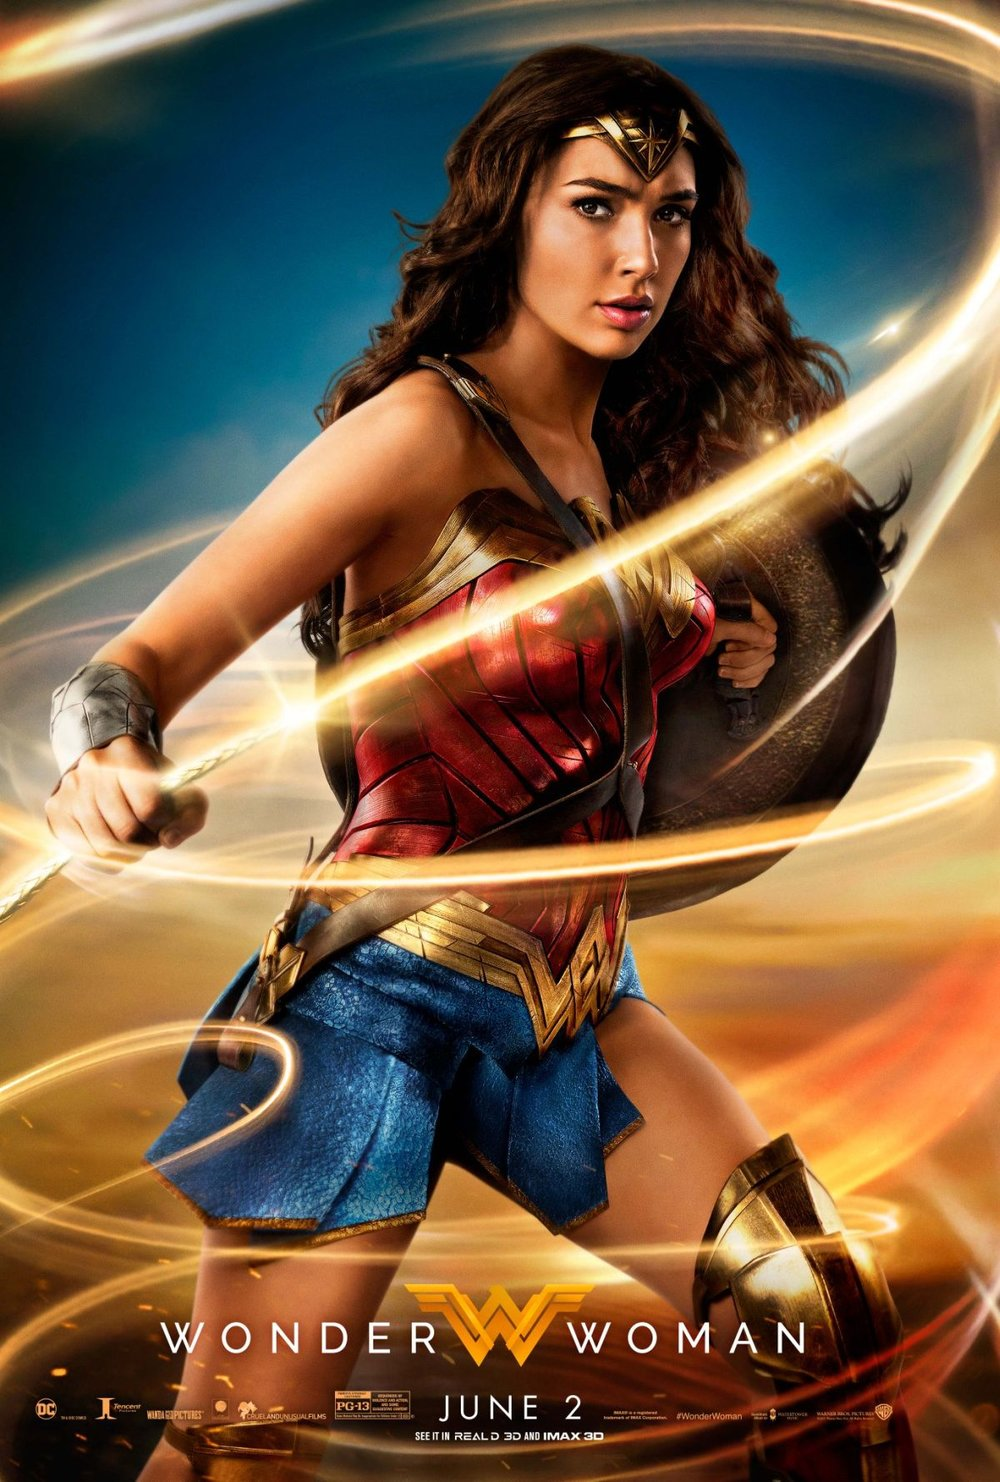 From http://www.superherohype.com/news/378799-power-grace-wisdom-the-wonder-woman-poster-has-it-all#/slide/1